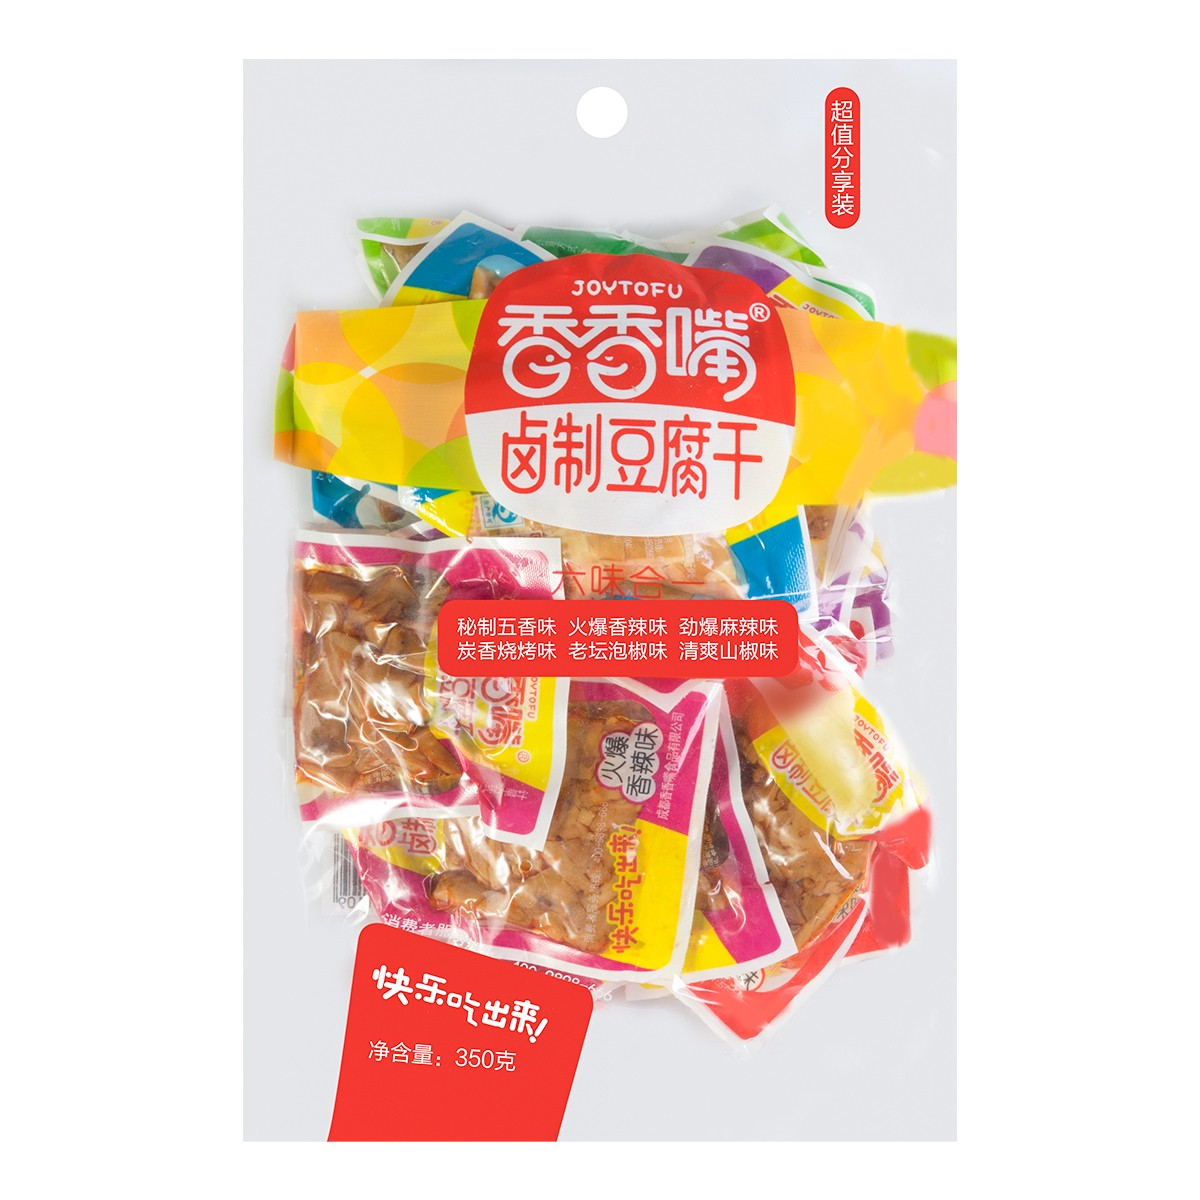 JOYTUFU Six Flavors Curds In One Pack 350g